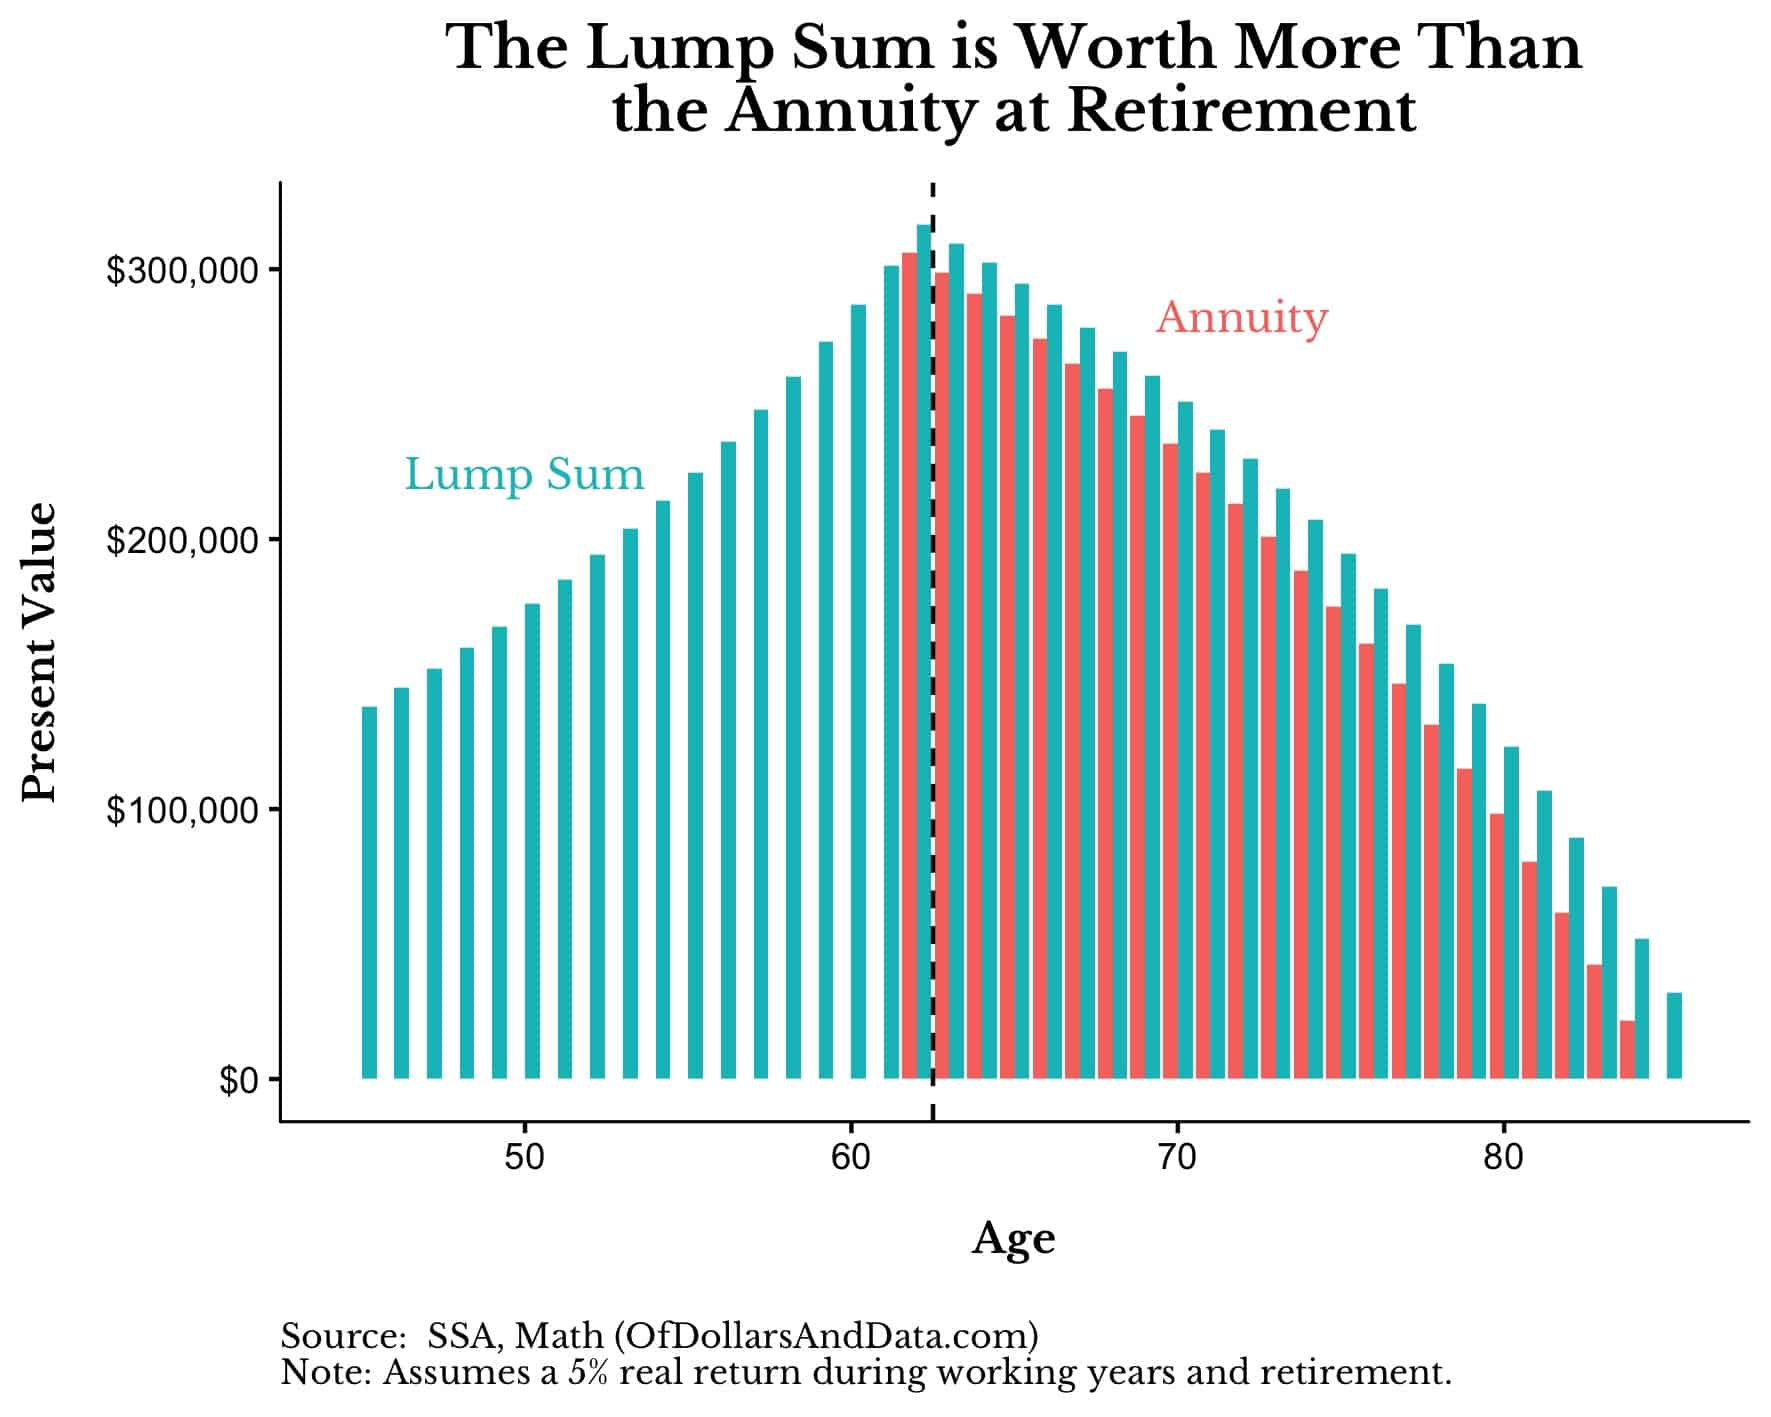 lump sum and annuity present values by age where the lump sum is worth more